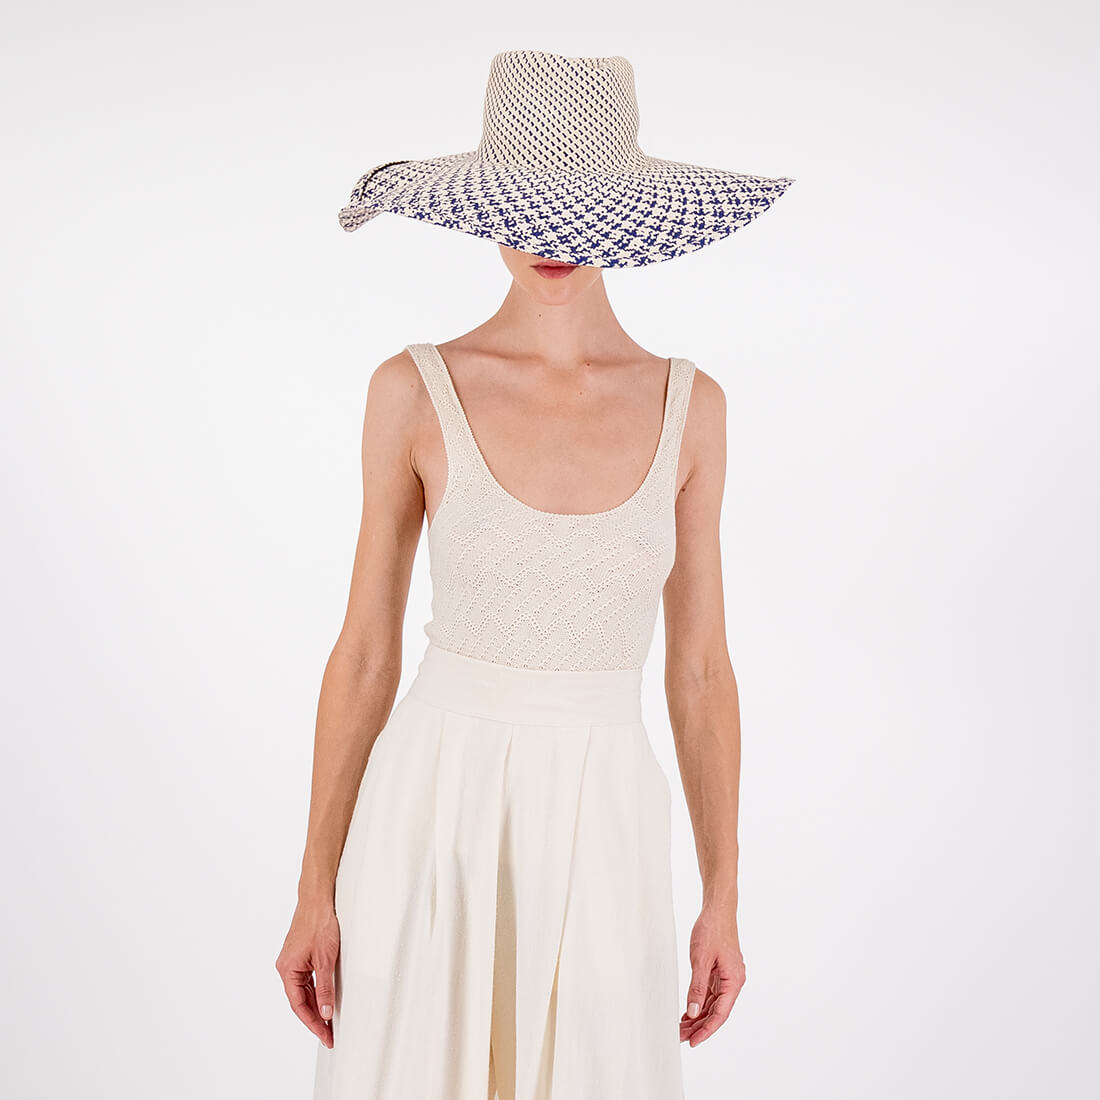 Palm woven hat 2